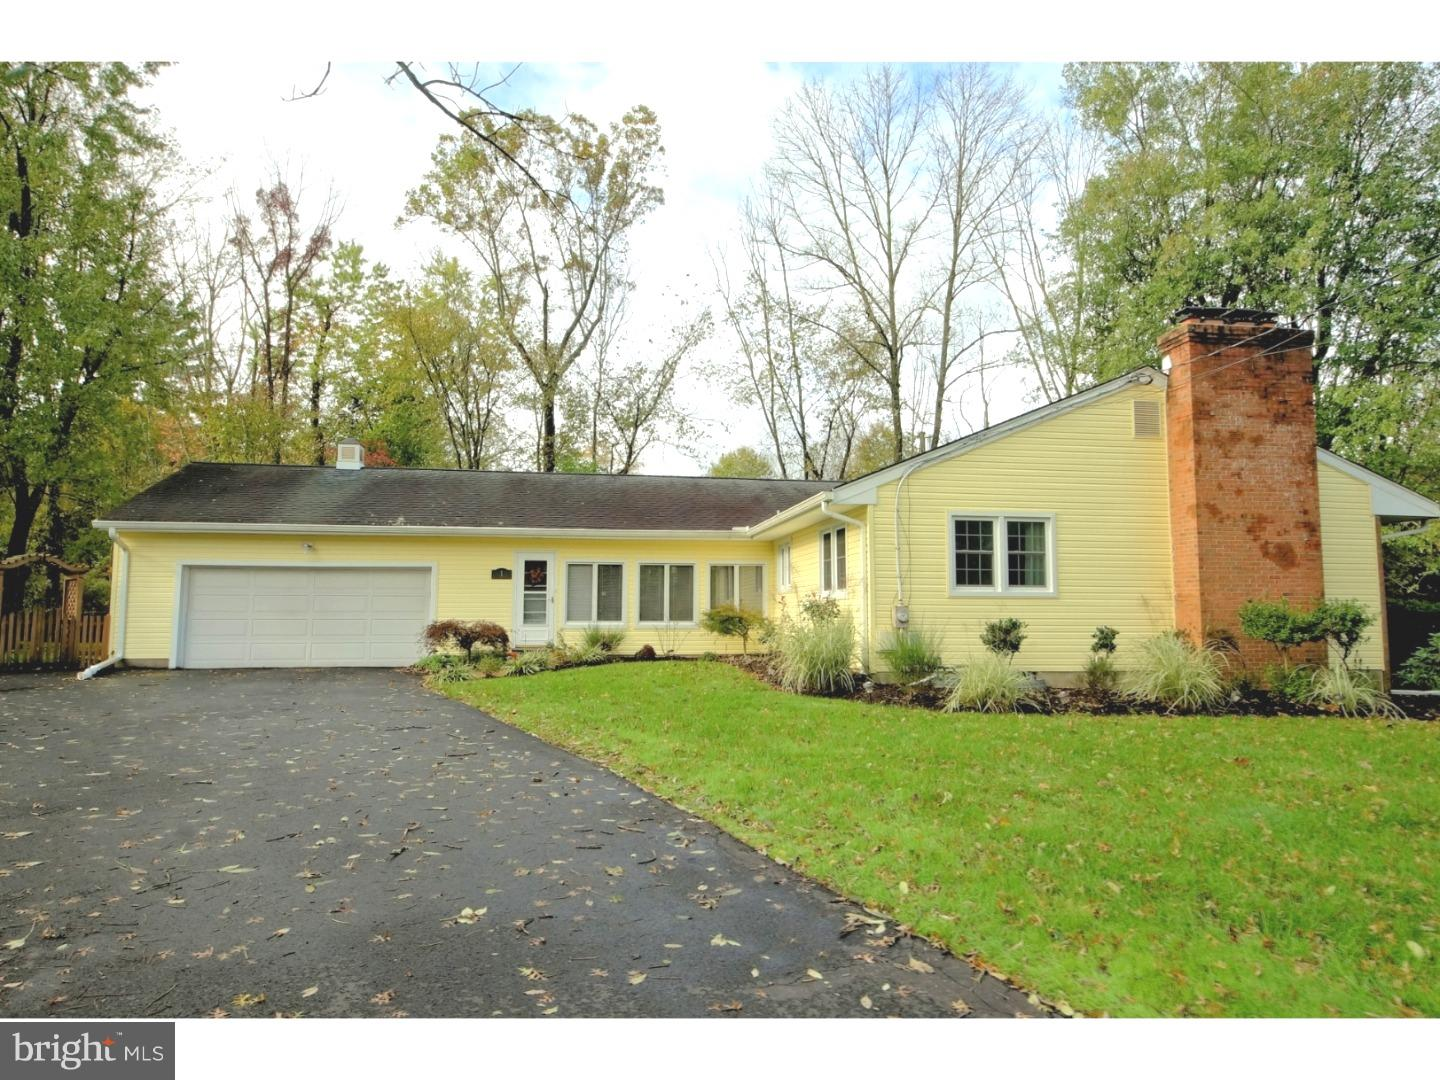 1 FABROW DRIVE, TITUSVILLE, NJ 08560